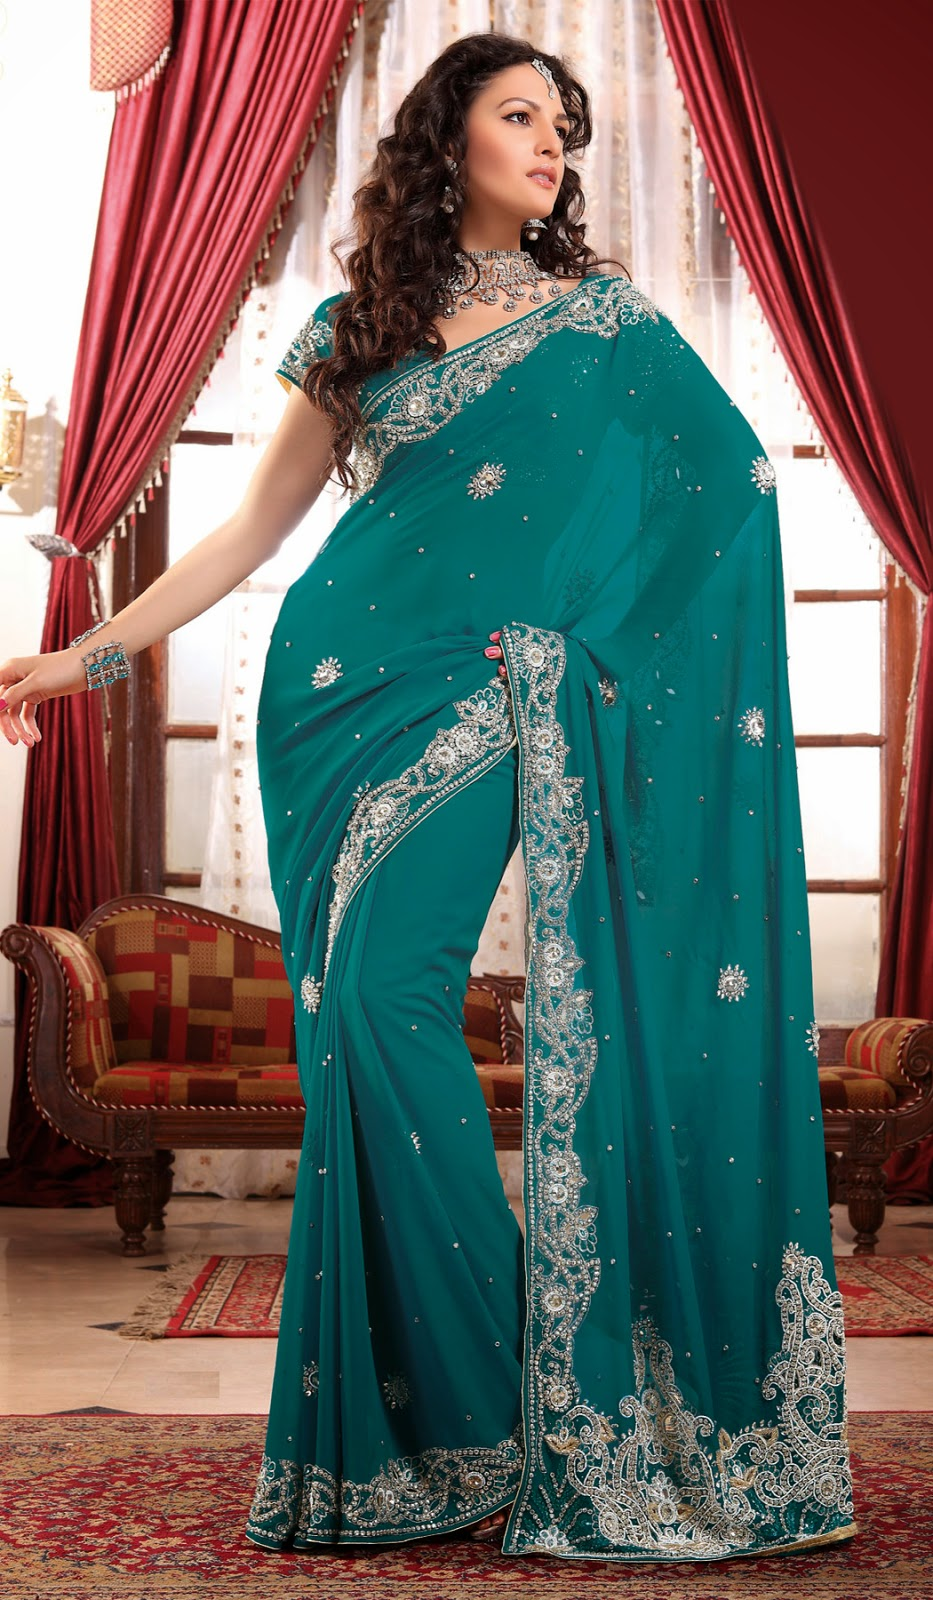 hot fashion pictures teal green georgette stylish indian